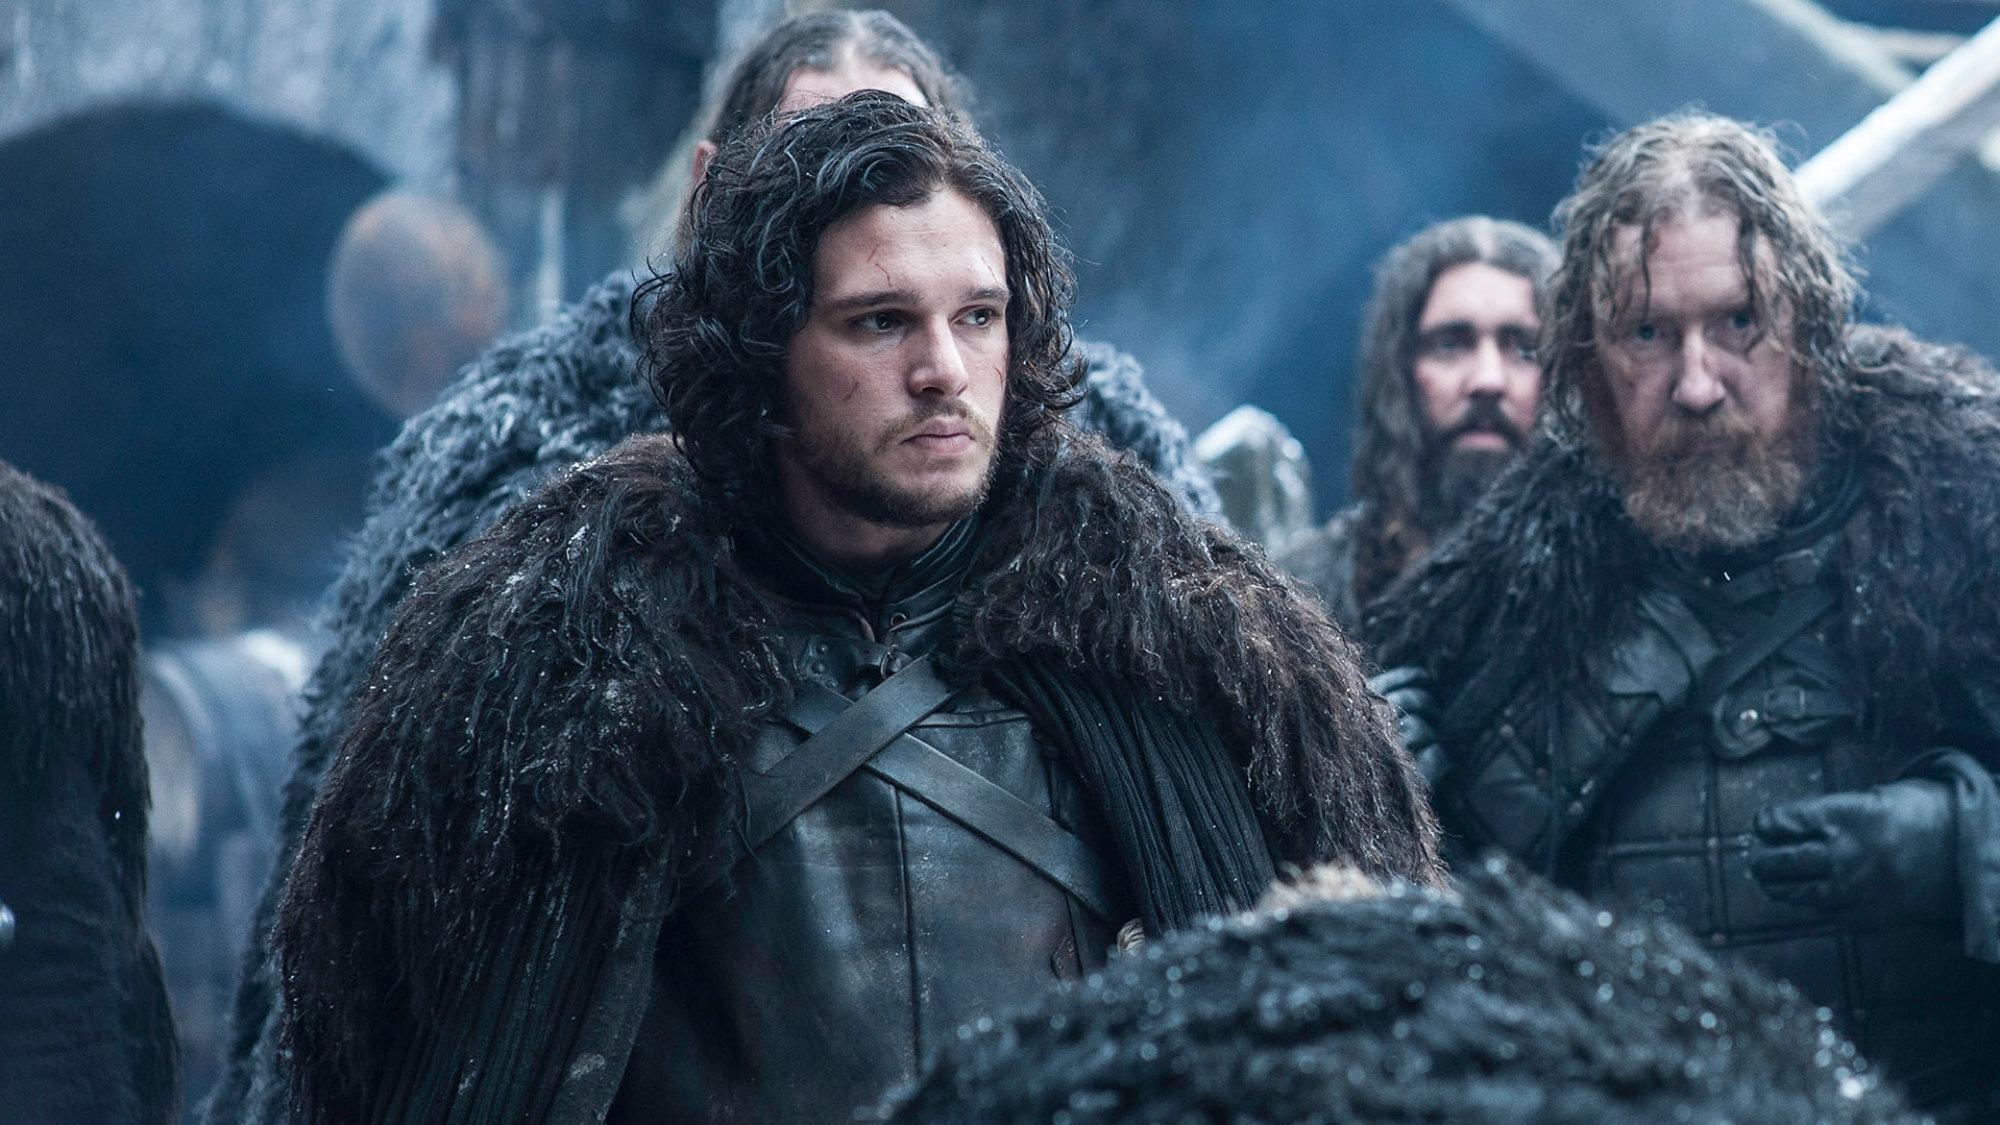 A publicity still from HBO's Game of Thrones Season 4, Episode 3.